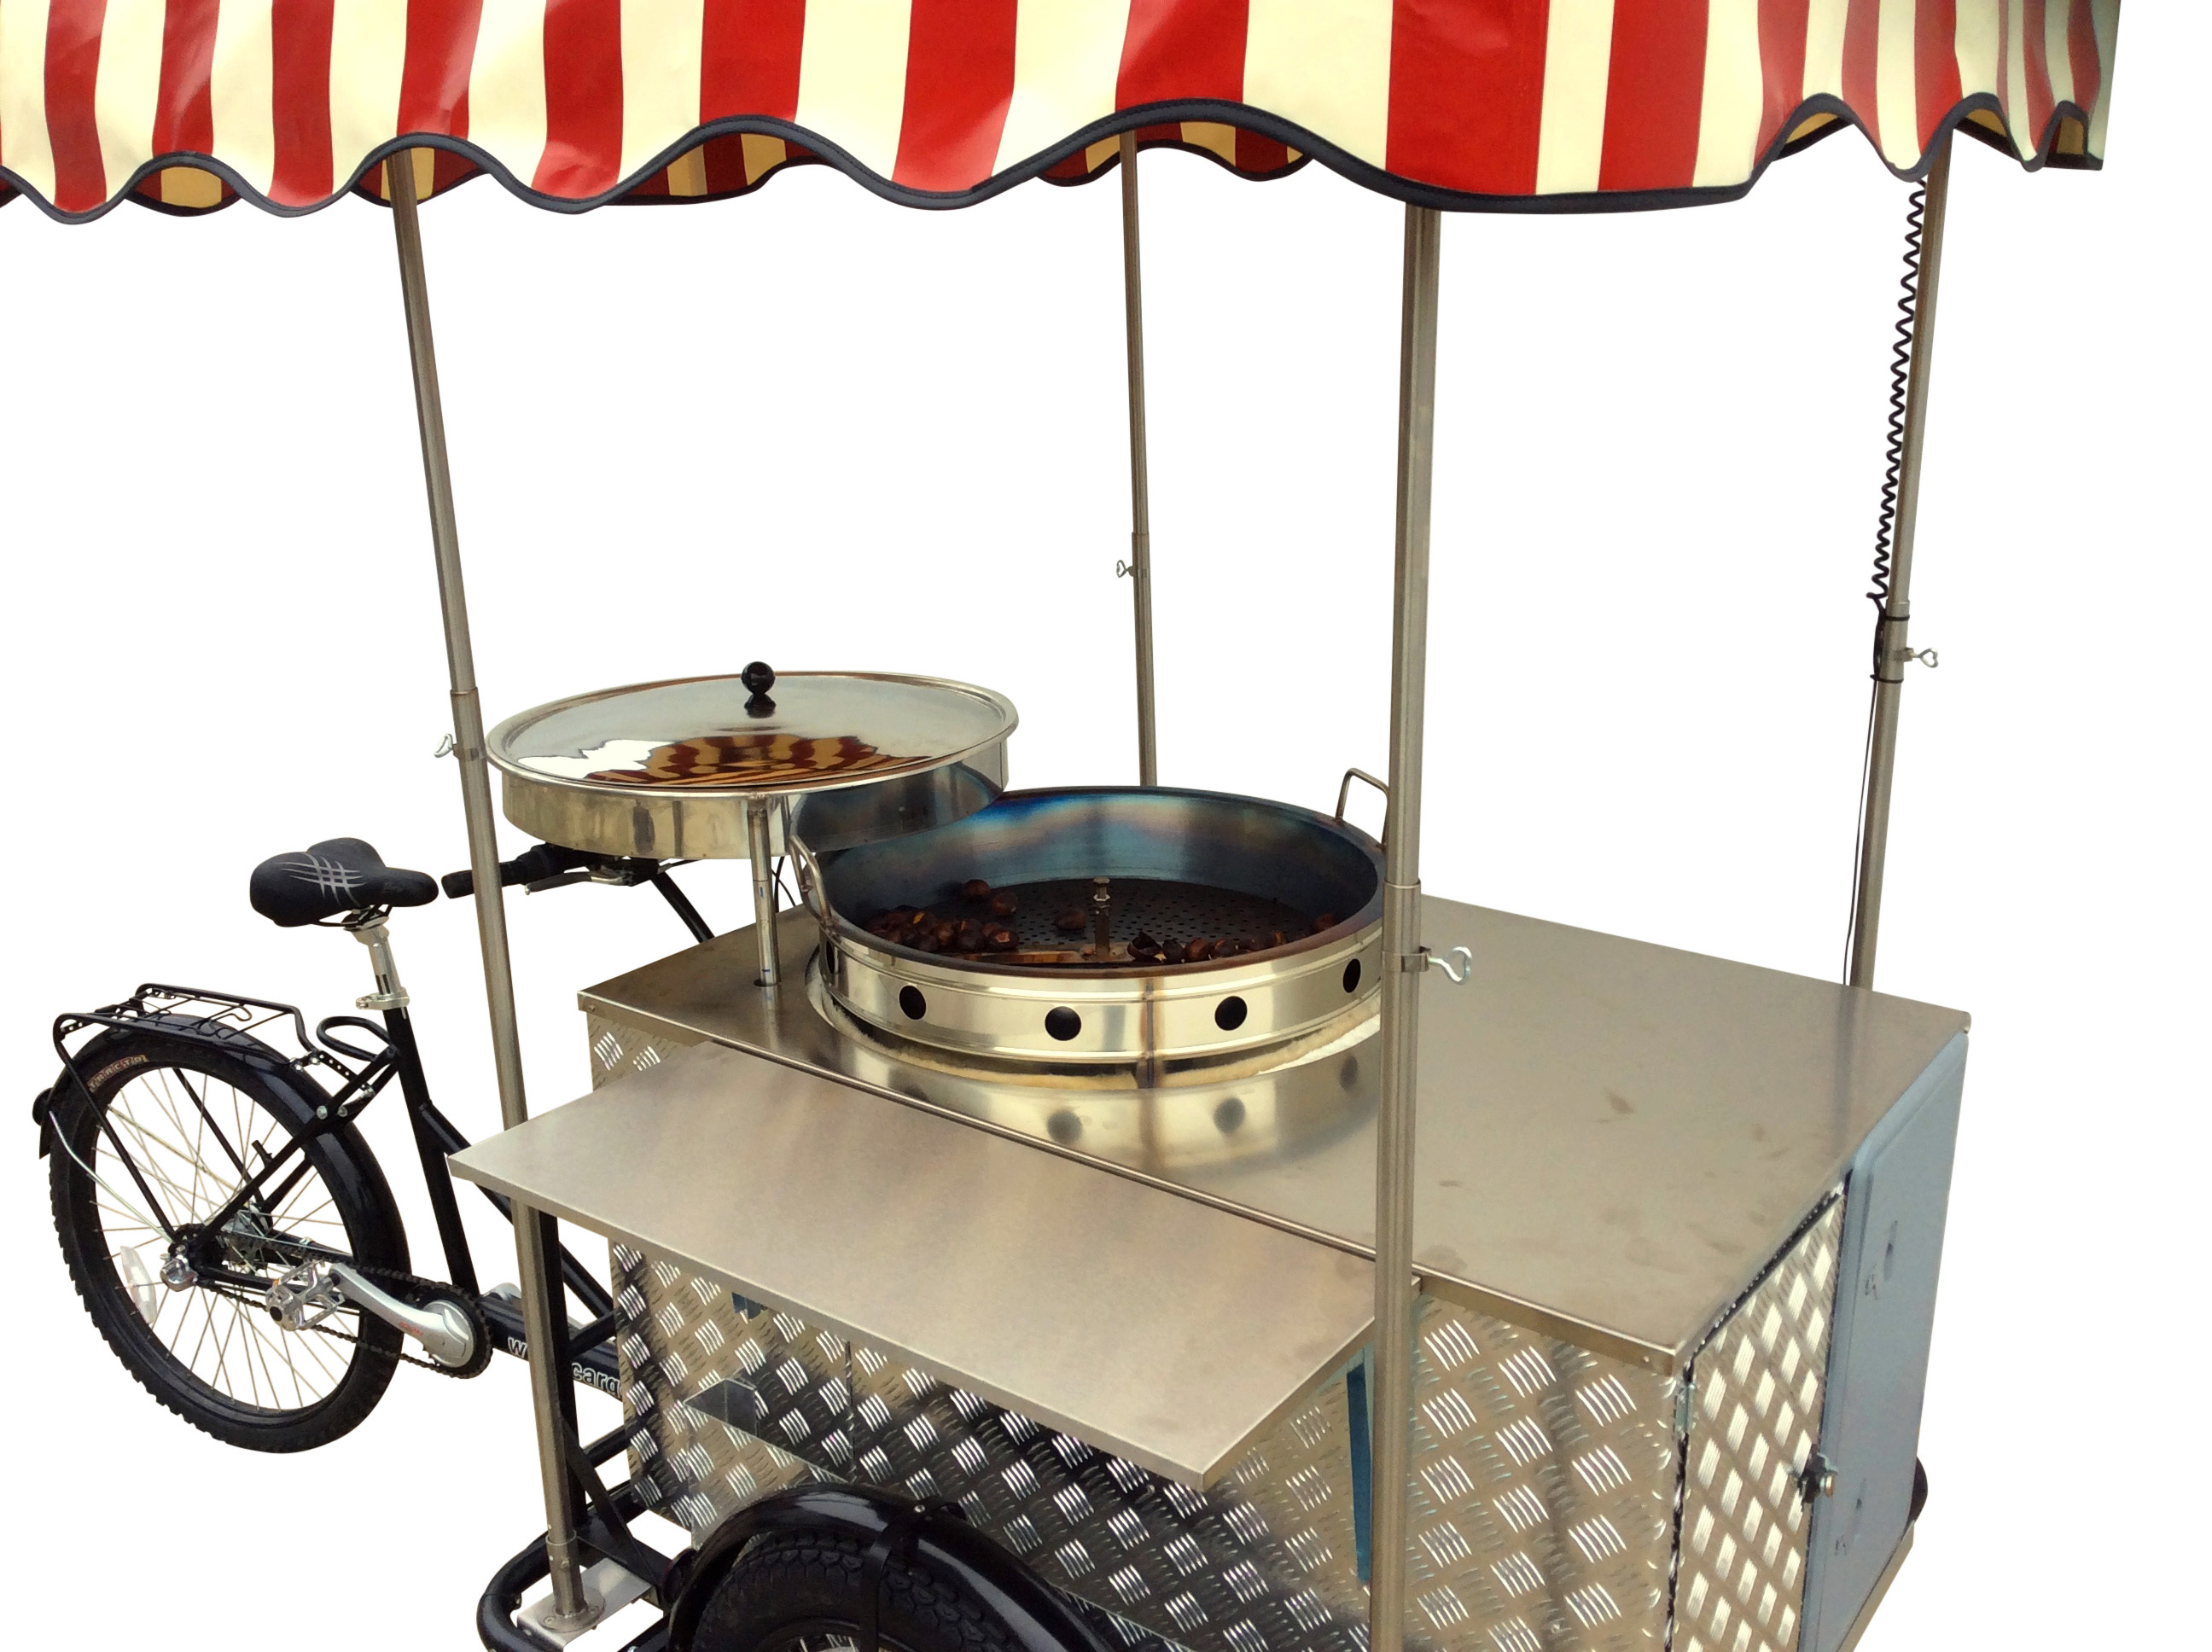 ROASTED_CHESTNUTS_CART_ON_TRICYCLE_CARGO_BIKE_2